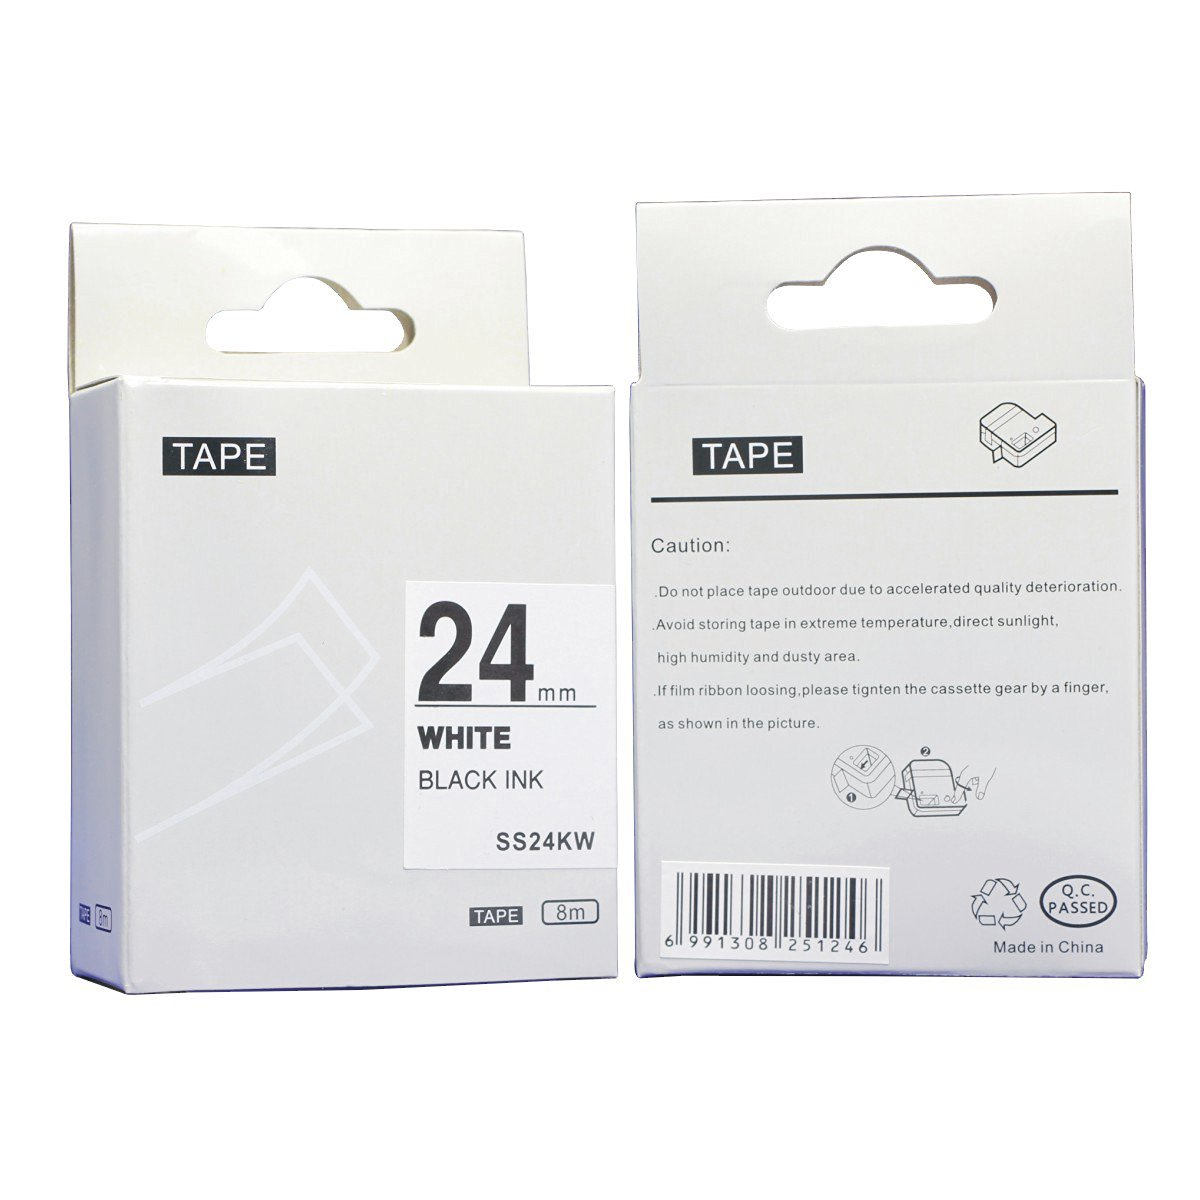 NEXTPAGE174;New compatible label tape for Epson LC-6WBN9(SS24KW) black on white 24mm8m use with Epson LM-700,LW-900P,OK500P, OK720,OK900P